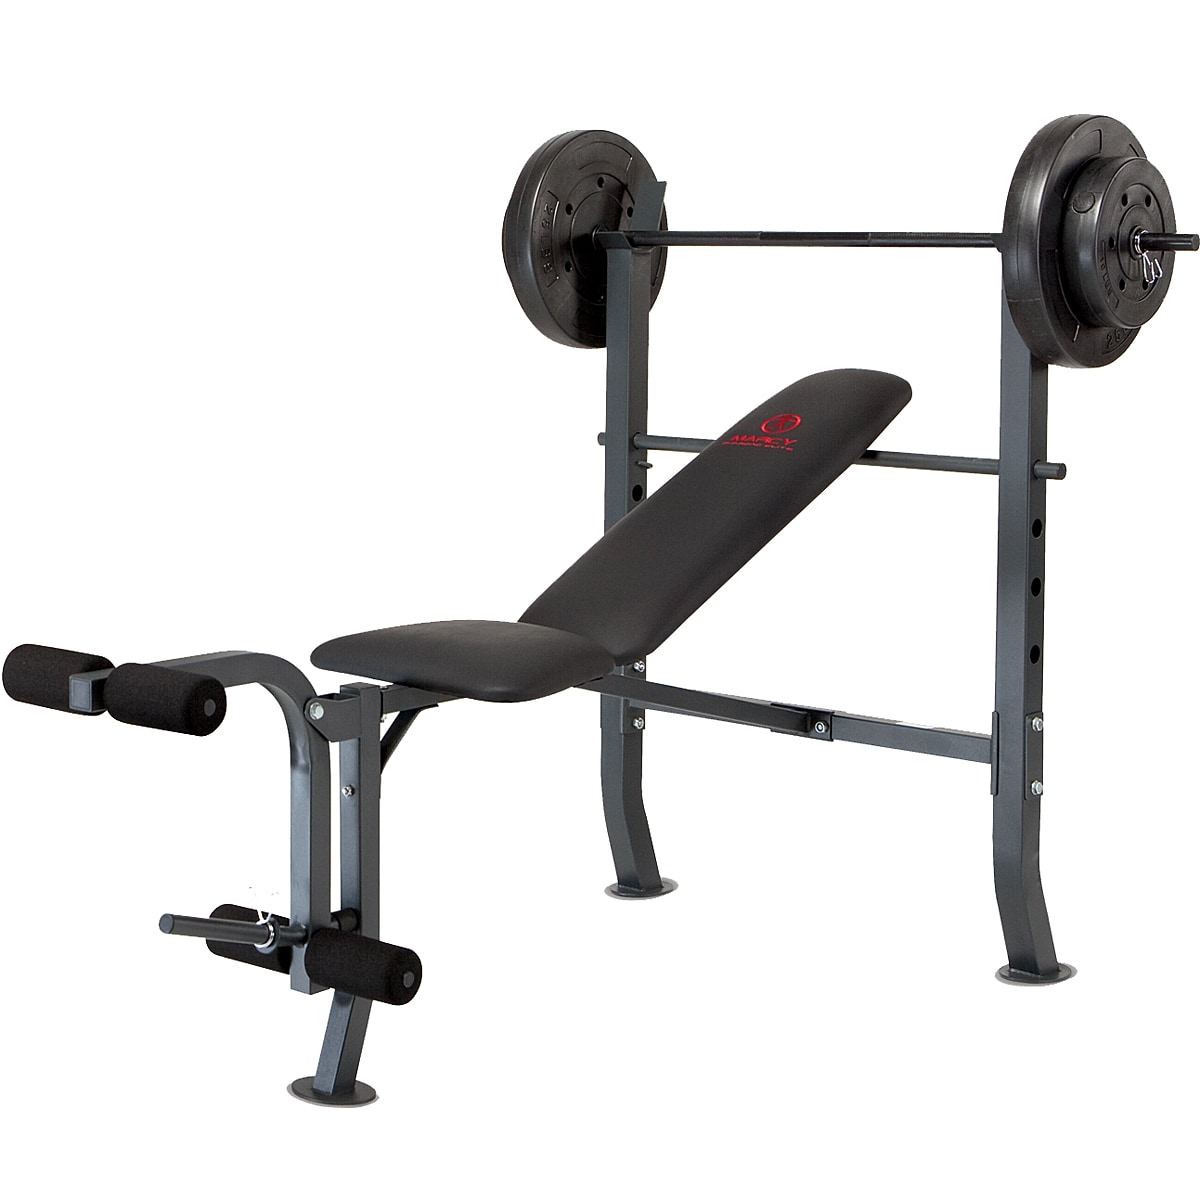 Marcy olympic with 80 pound weight set workout bench overstock shopping the best prices on Bench and weight set